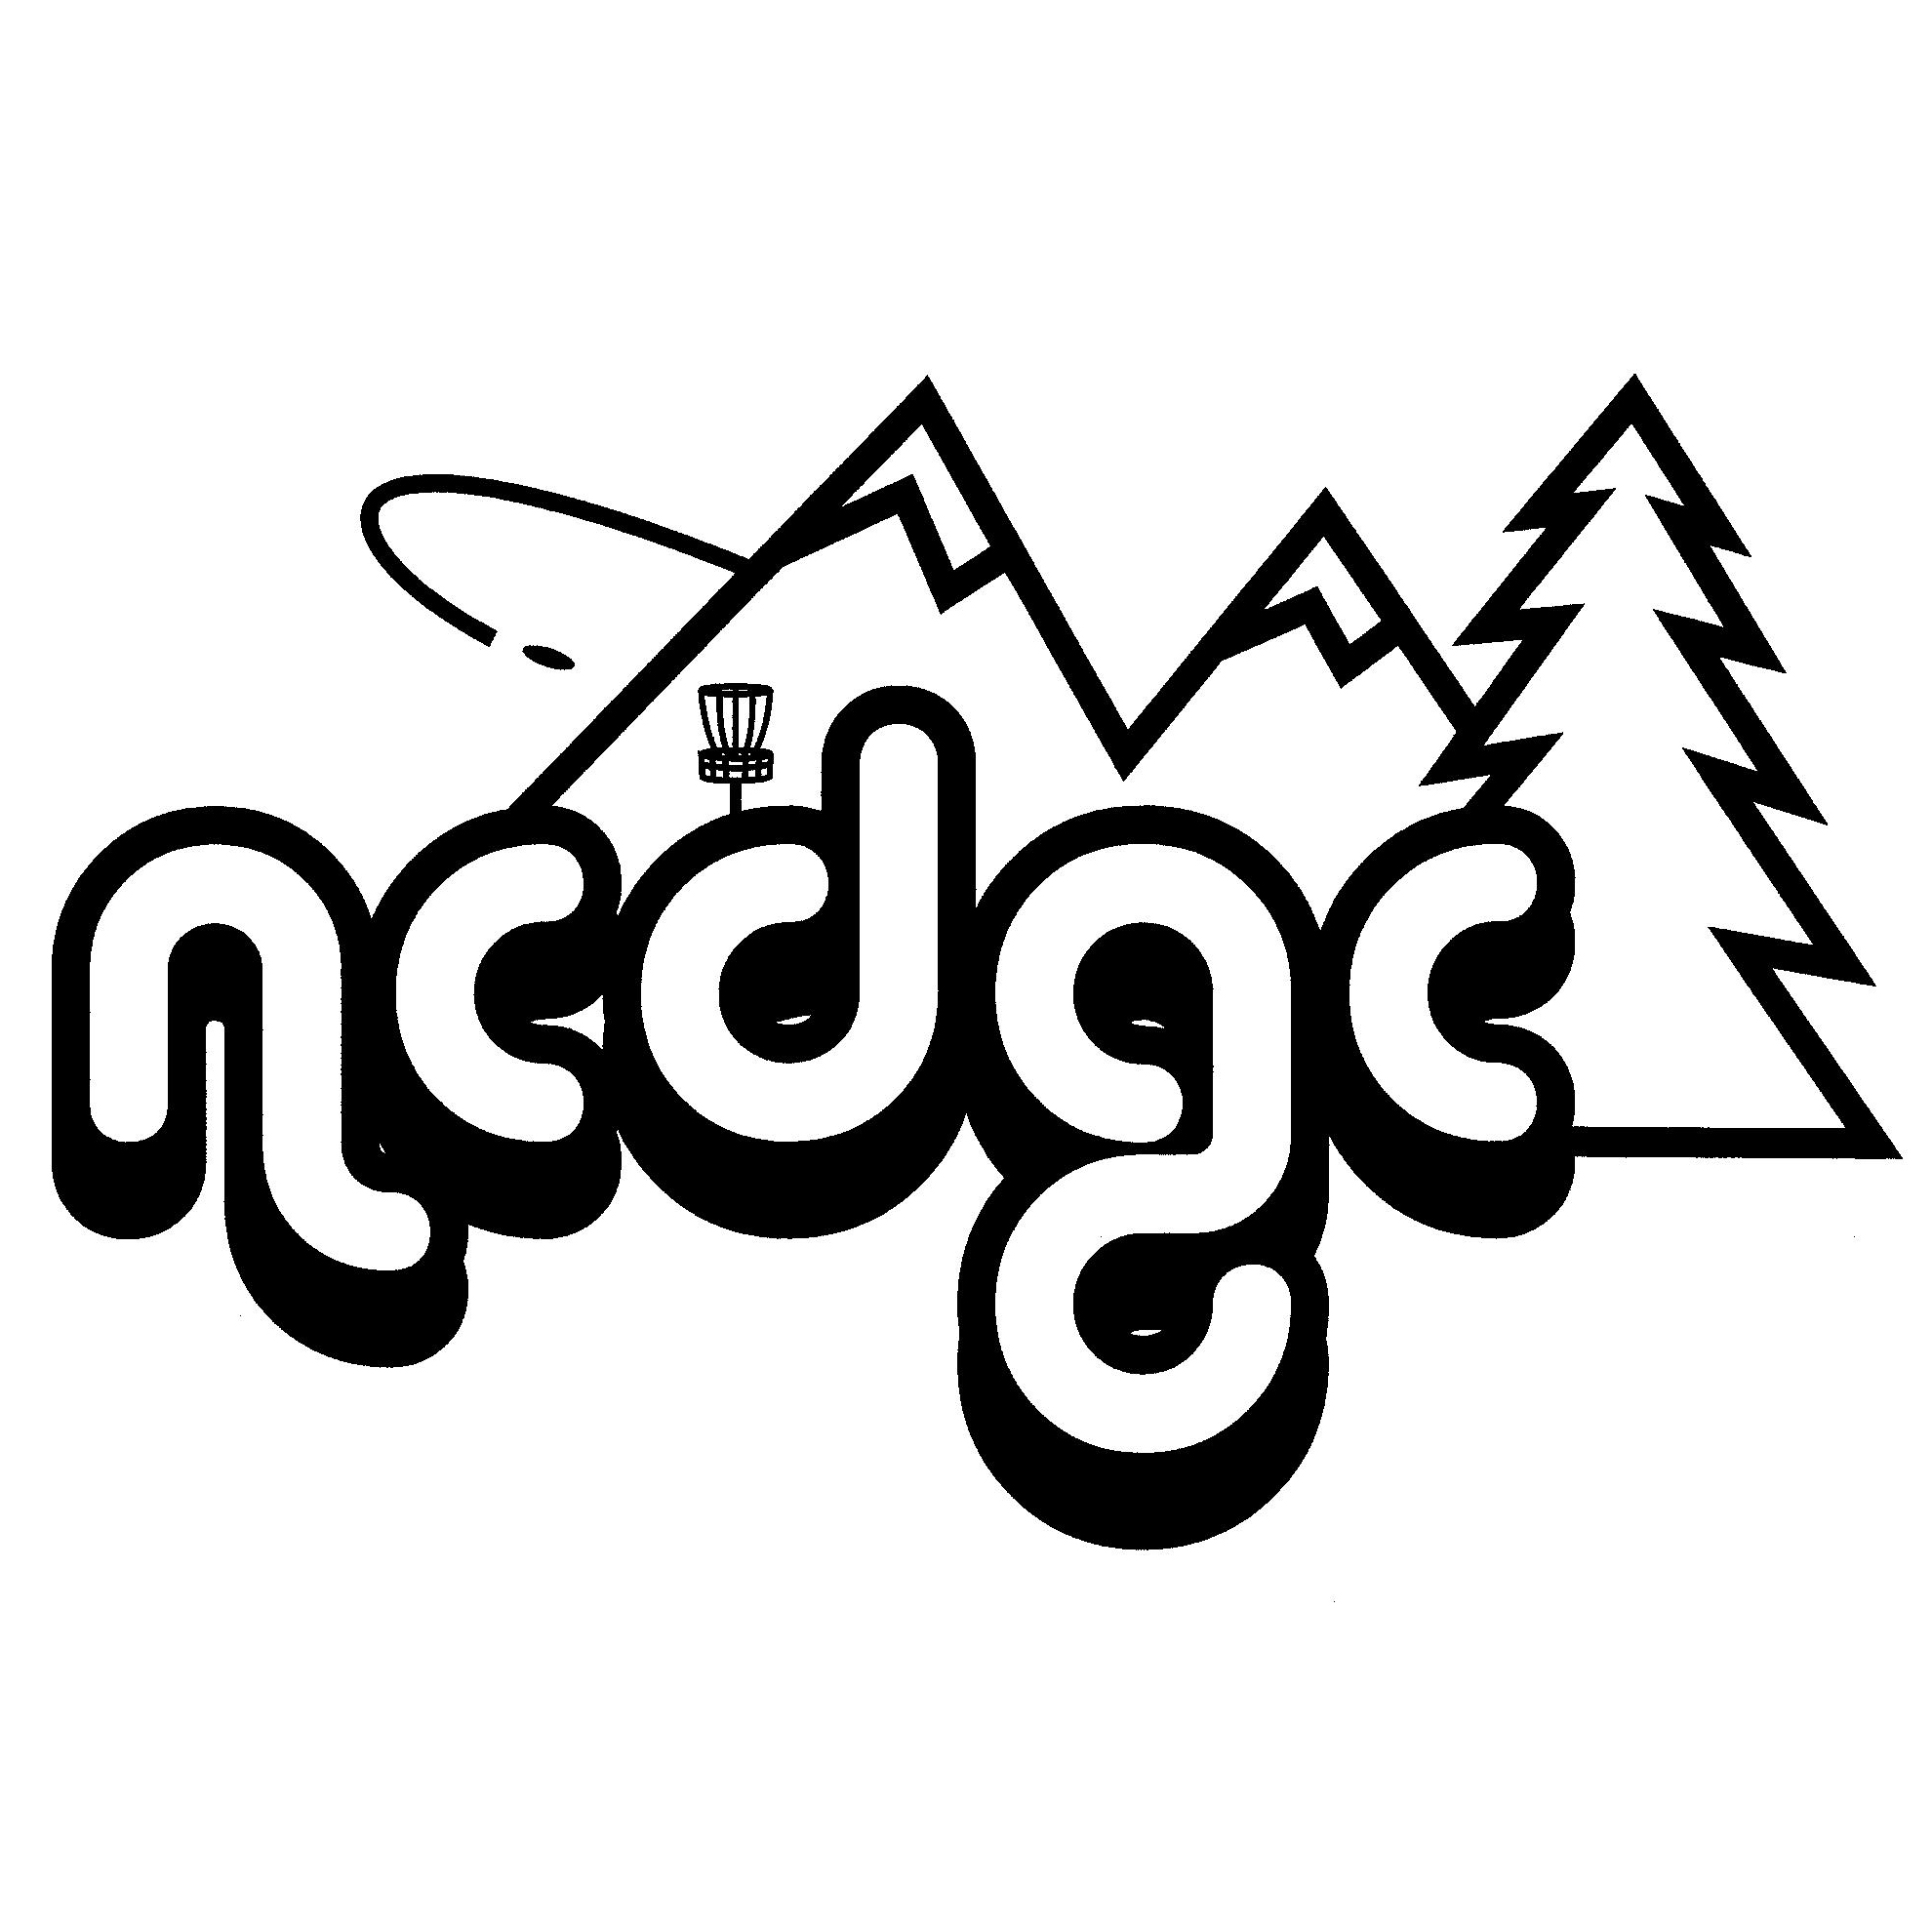 Northern Colorado Disc Golf Club (NoCo) logo with mountains and basket